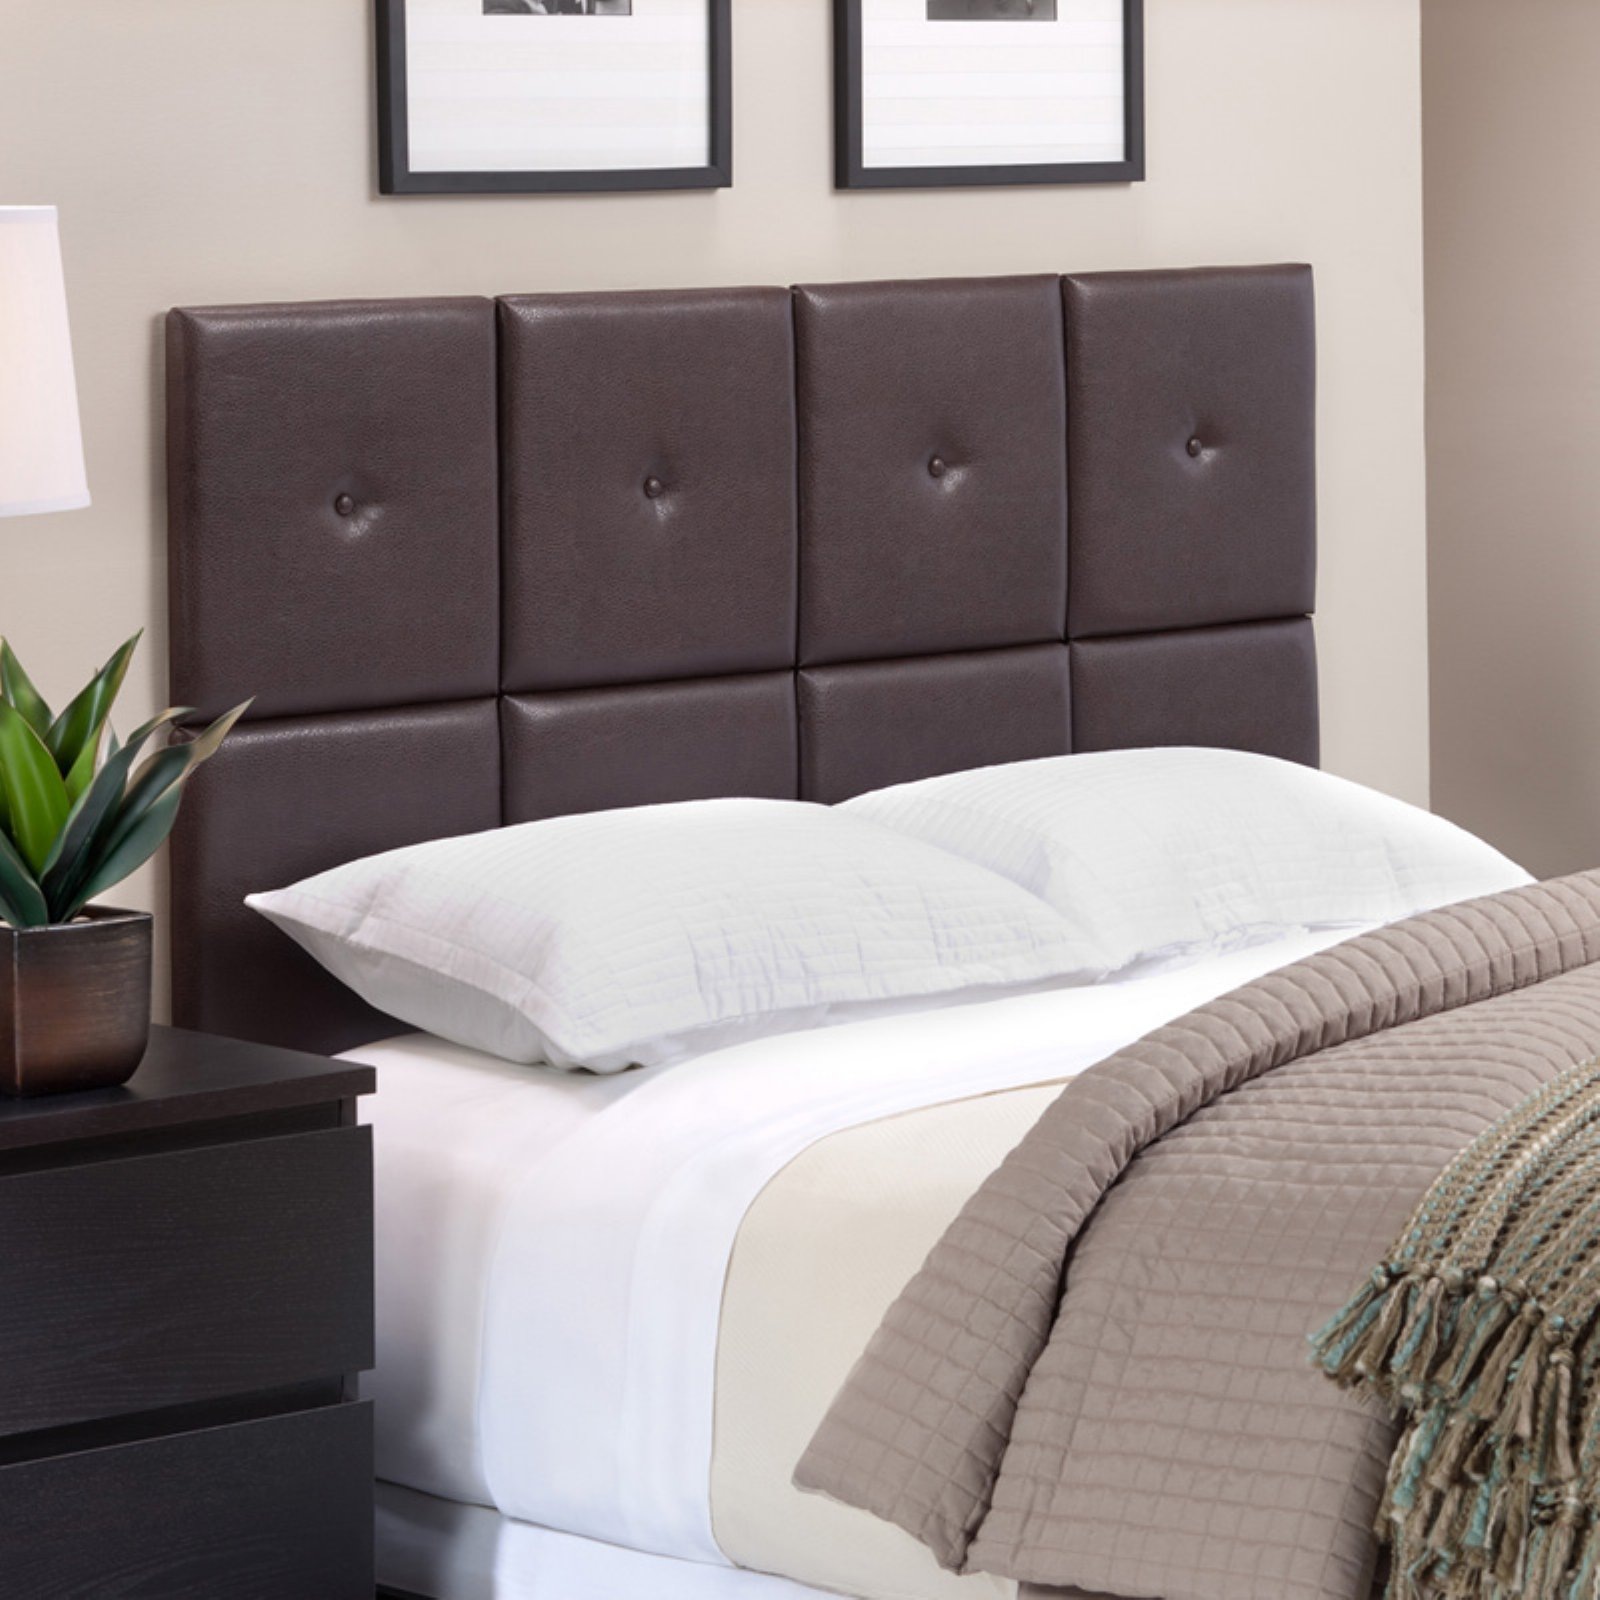 Foremost Tessa Espresso PU Headboard Tiles with Tuft, Full/Queen